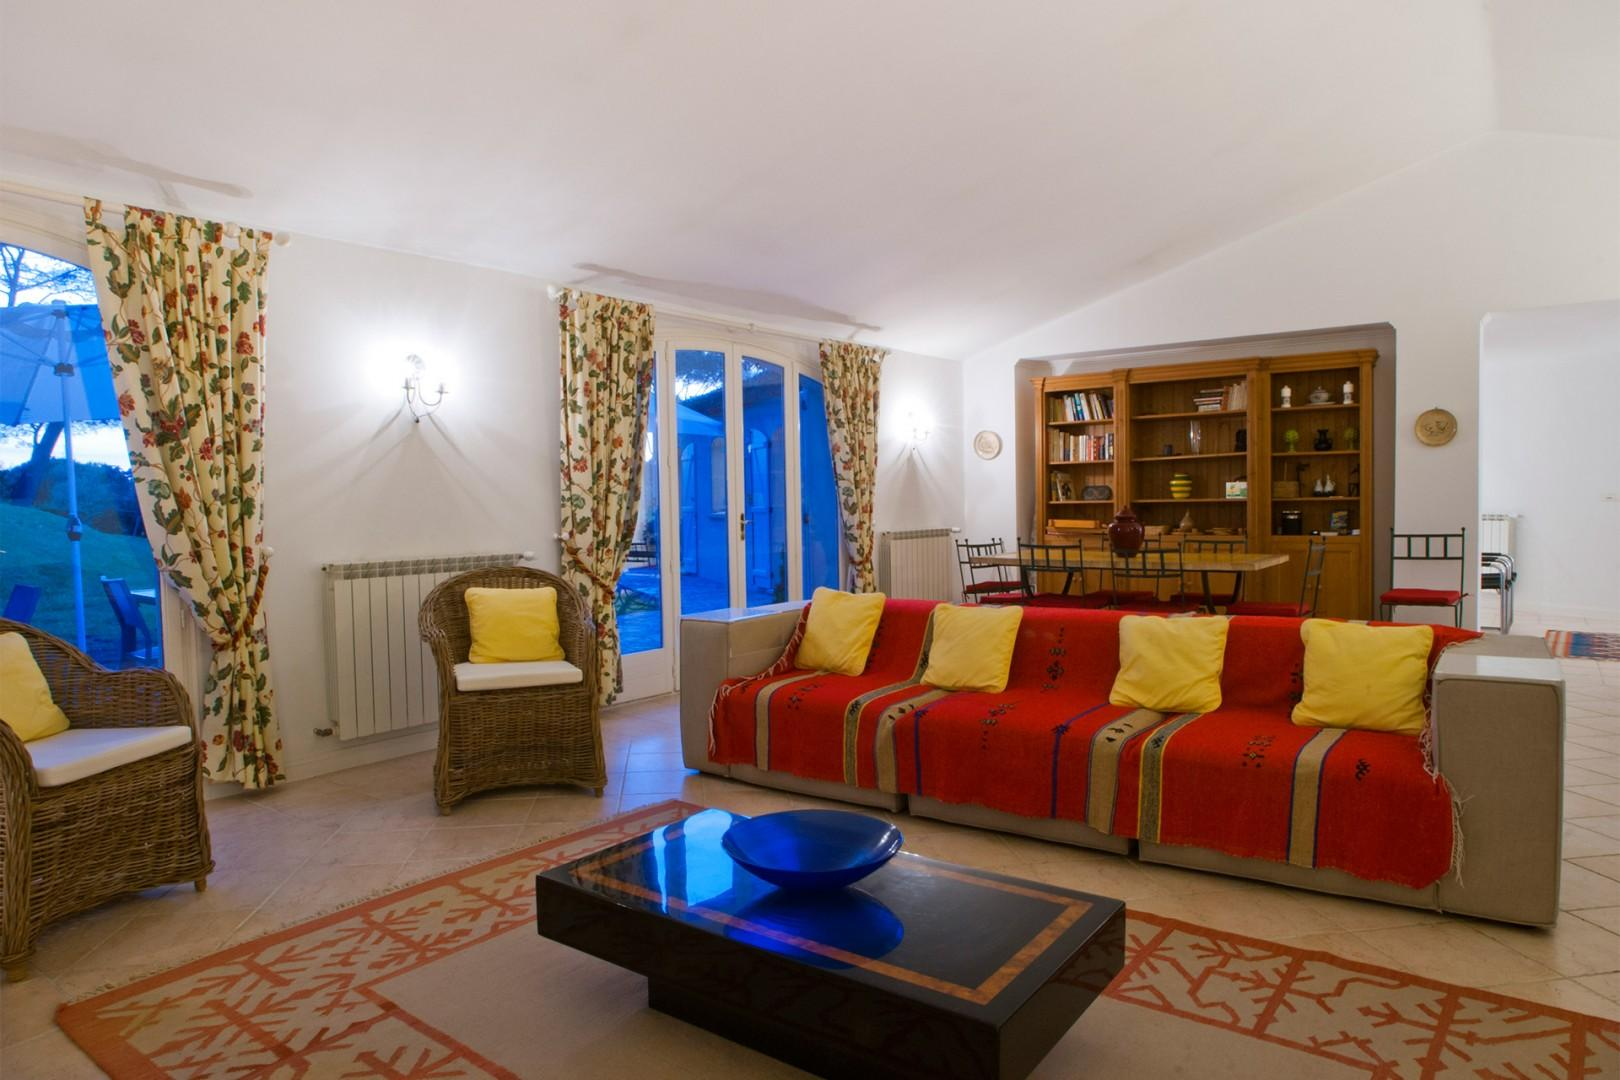 Large and comfortable living area with plenty of seating